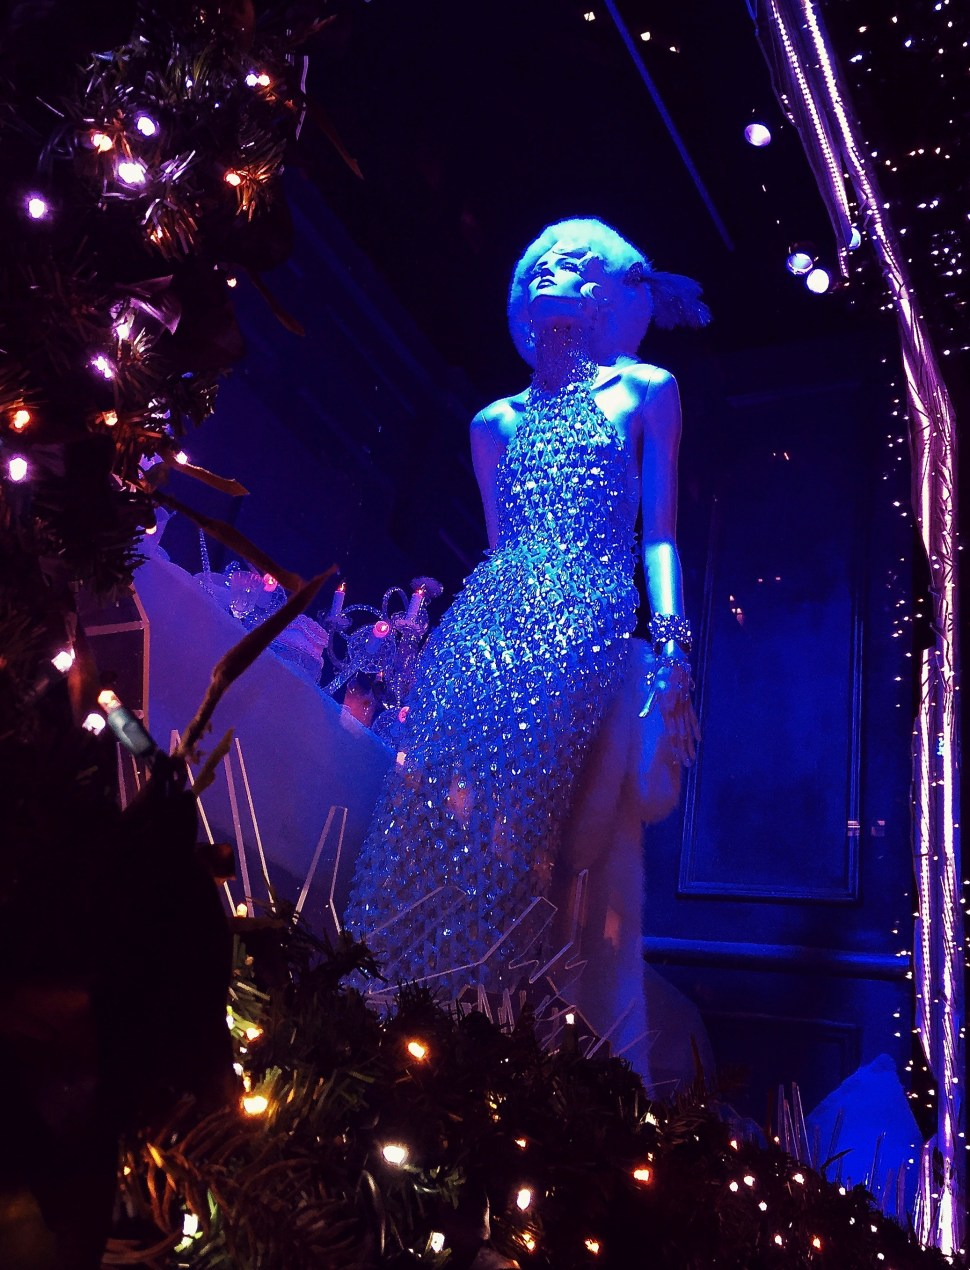 Holiday windows at Saks Fifth Avenue. Photo by Rick Stachura. December 18, 2015.